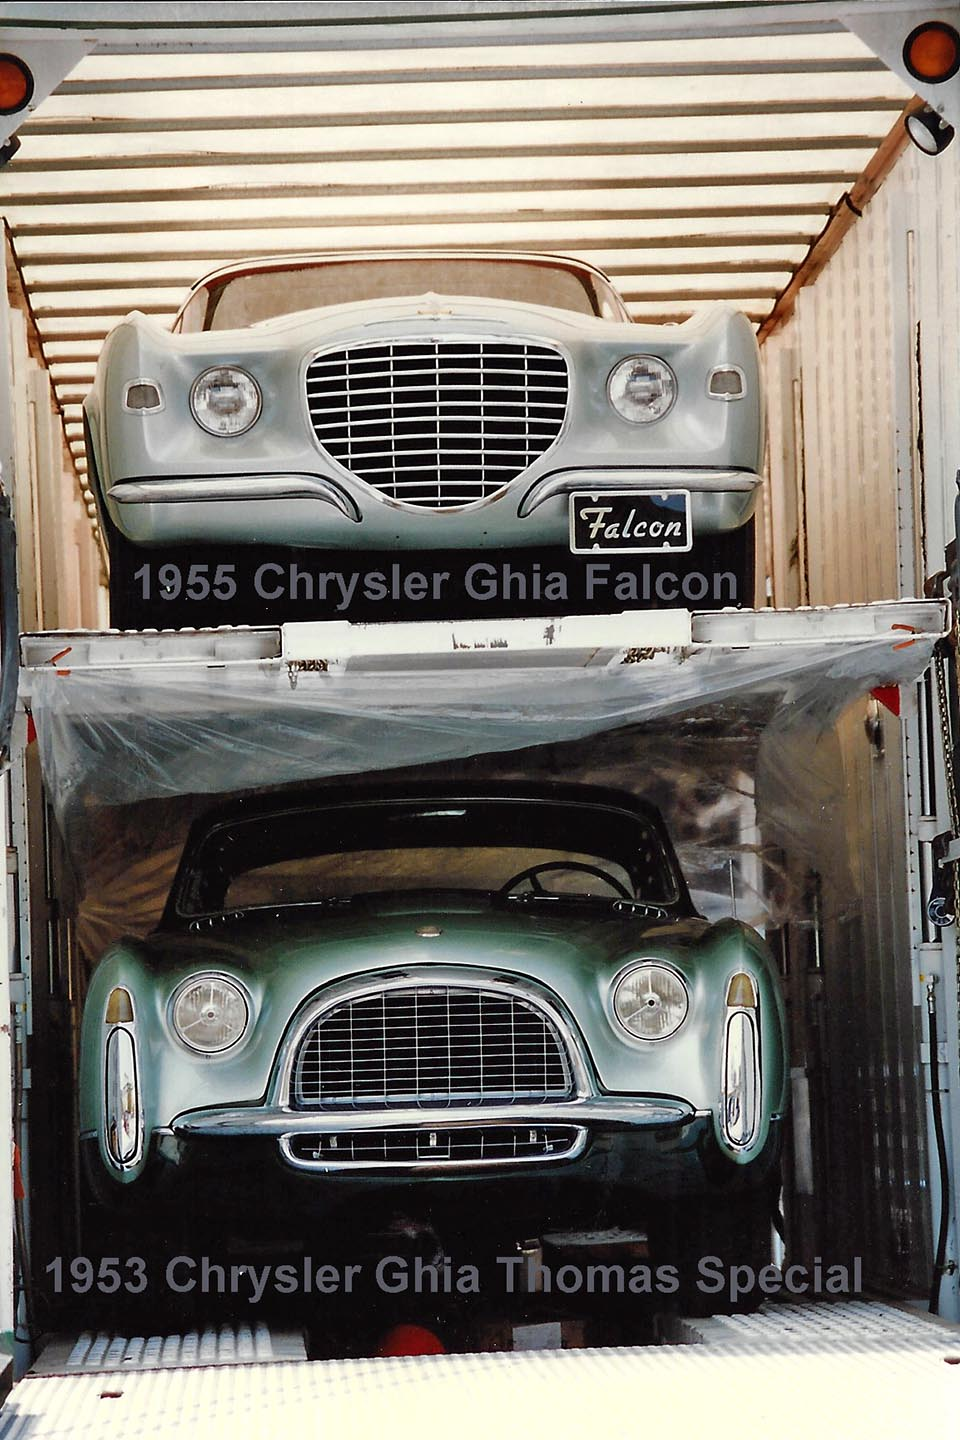 1955 Chrysler Ghia Falcon and 1953 Chrysler Ghia Thomas Special being delivered to the museum.